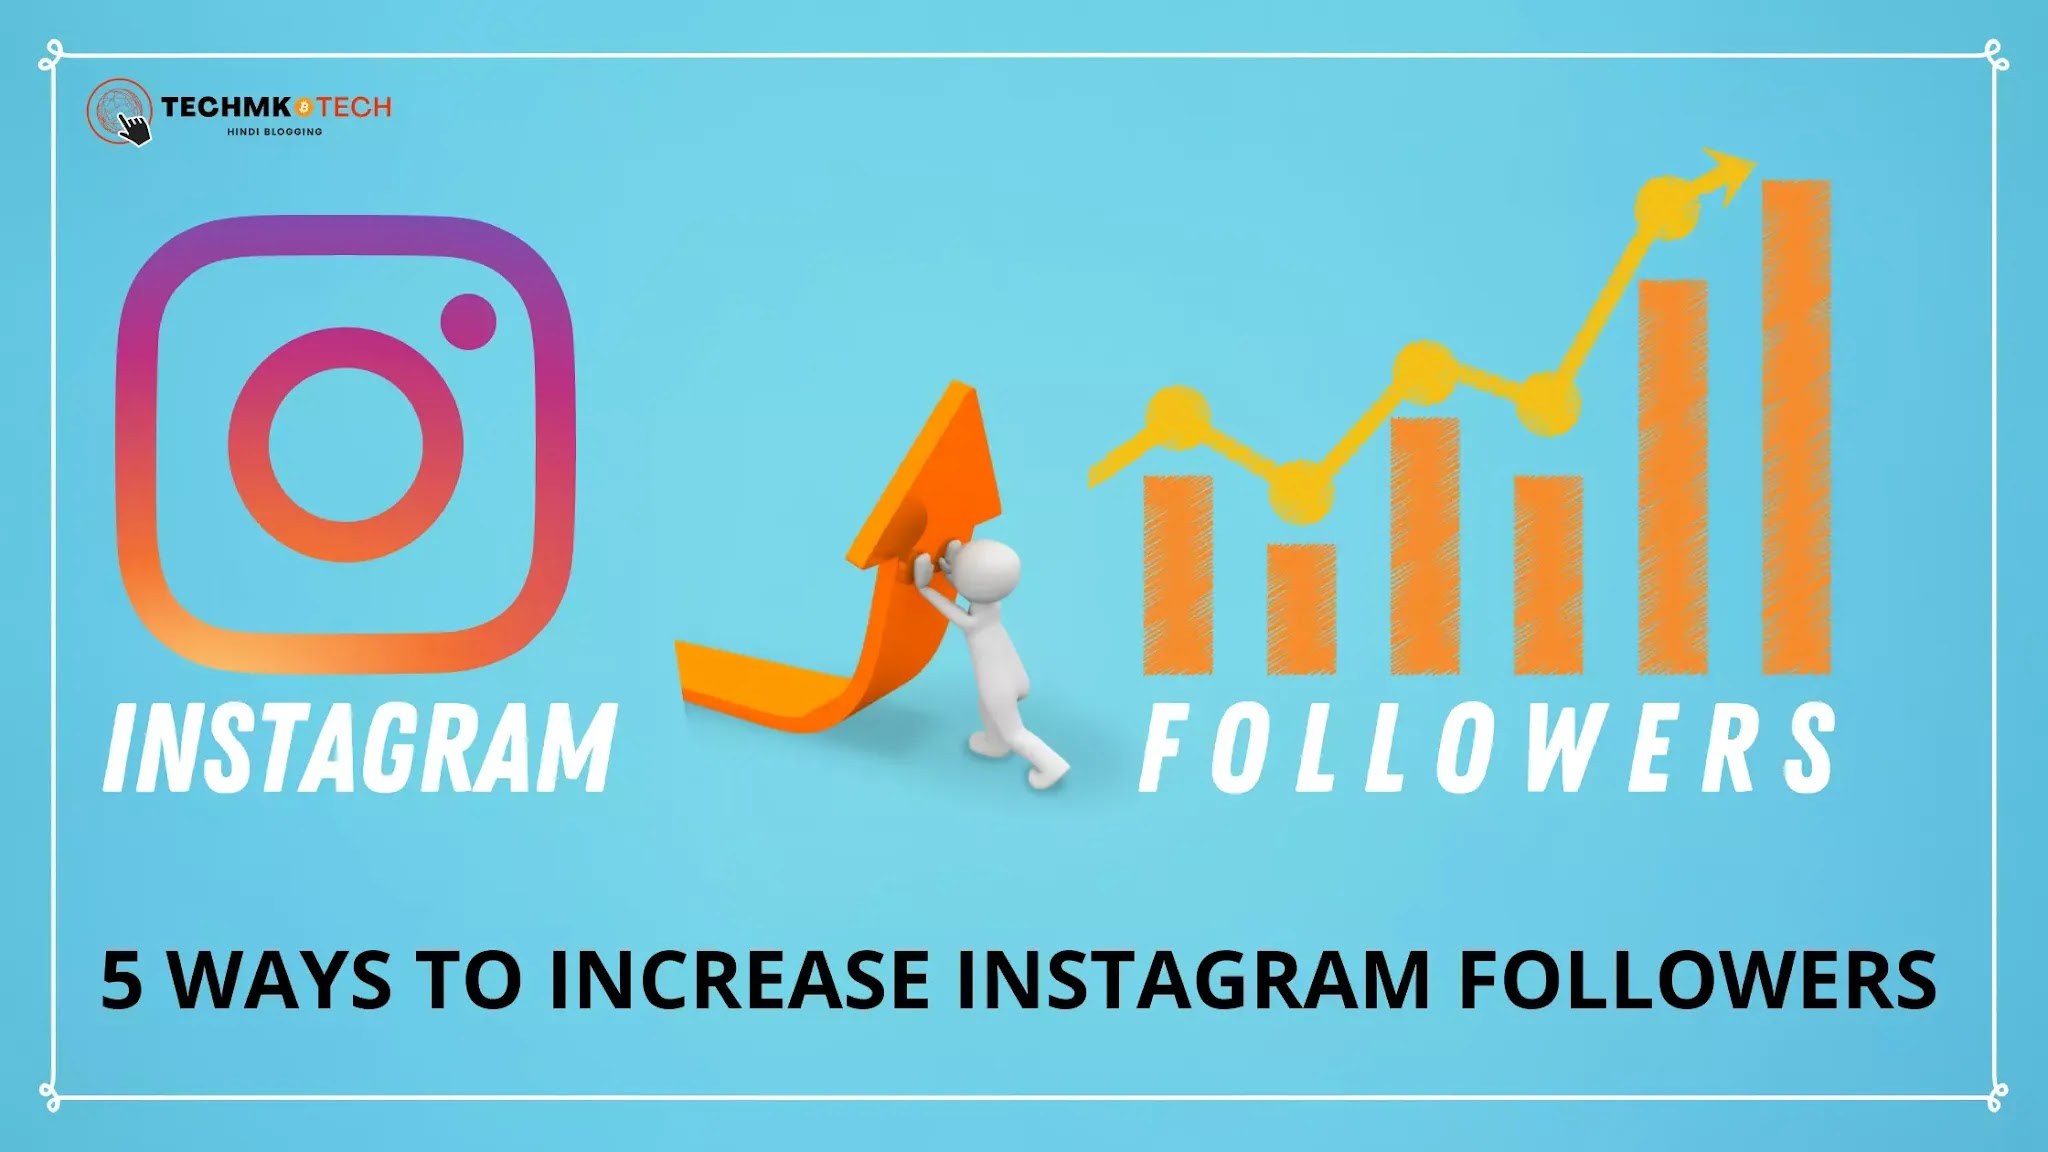 How-to-get-more-followers-on-Instagram-cheat,Instagram-followers-app,Best-Instagram-followers,How-to-get-100-followers-on-Instagram,Get-real-Instagram-followers,How-t-get-fake-followers-on-Instagram,Grow-Instagram-followers,